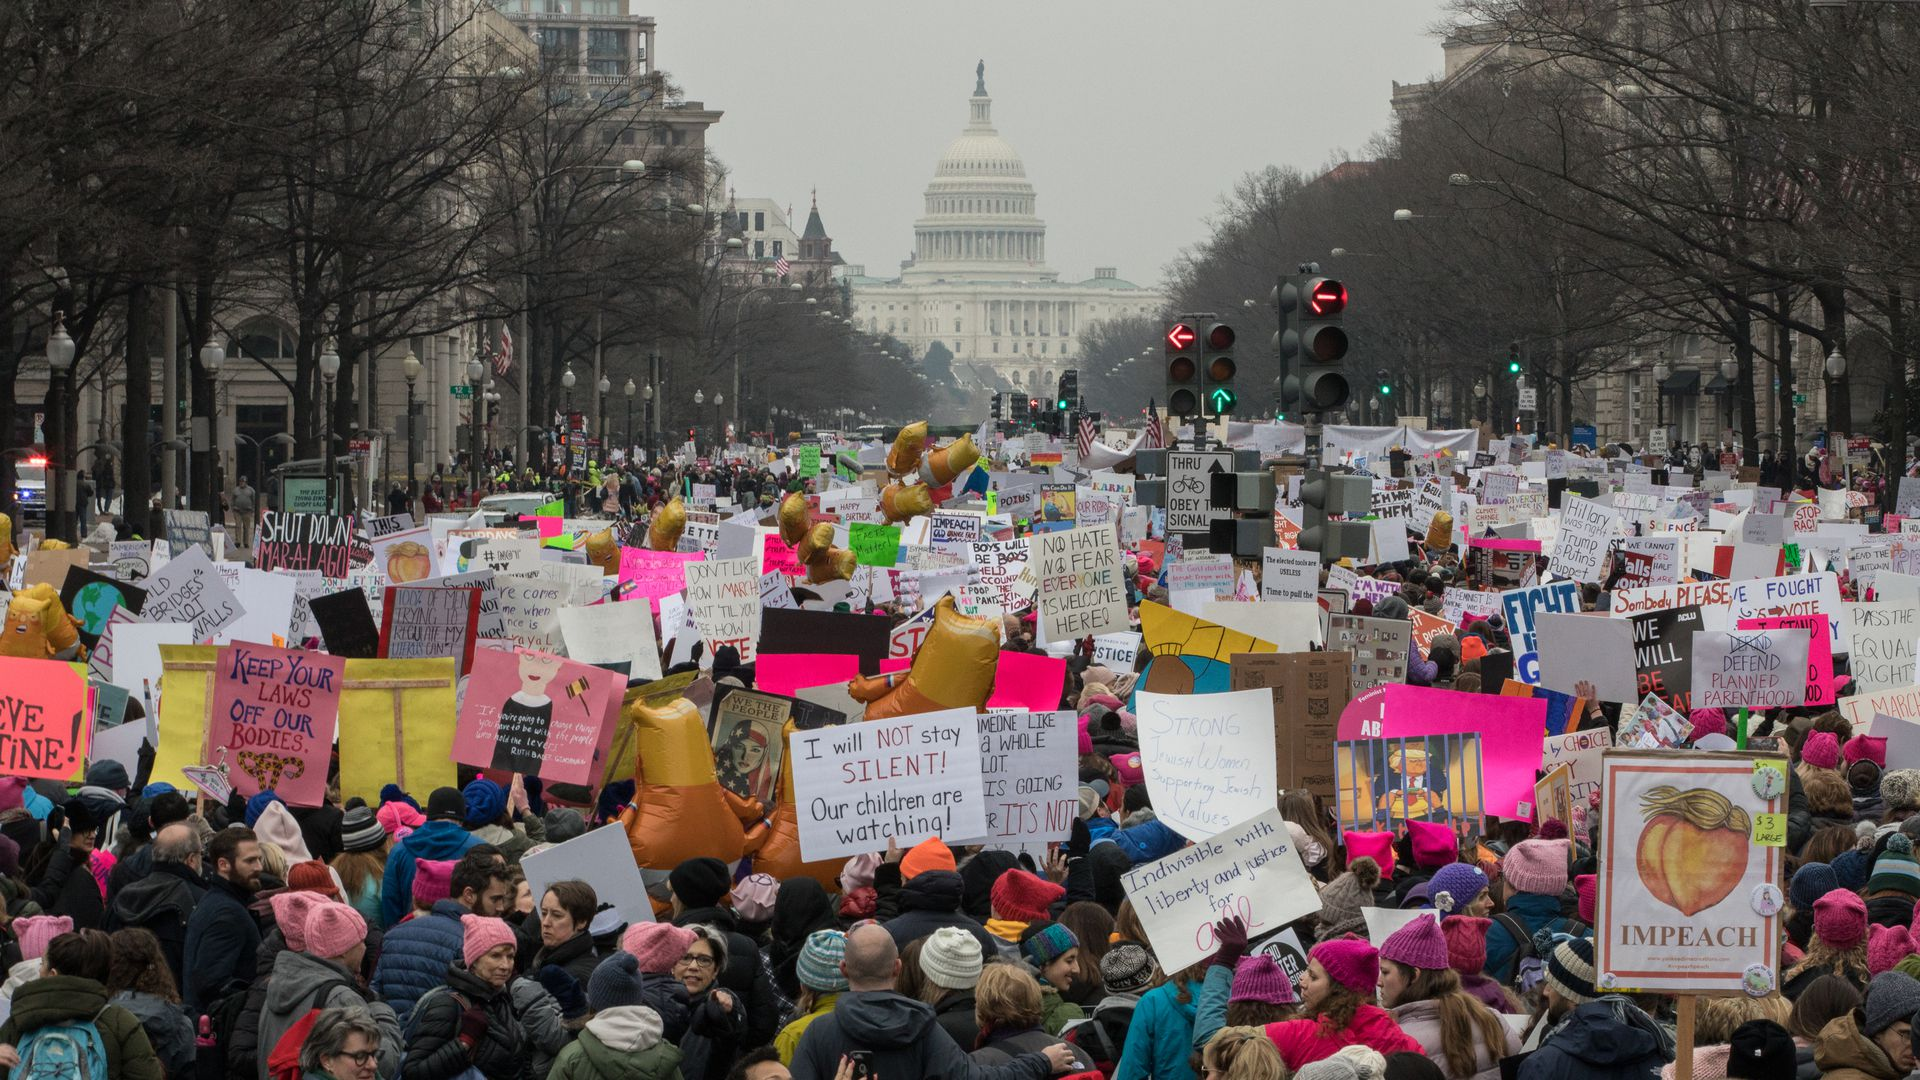 Women's March on Washington expects historically low turnout